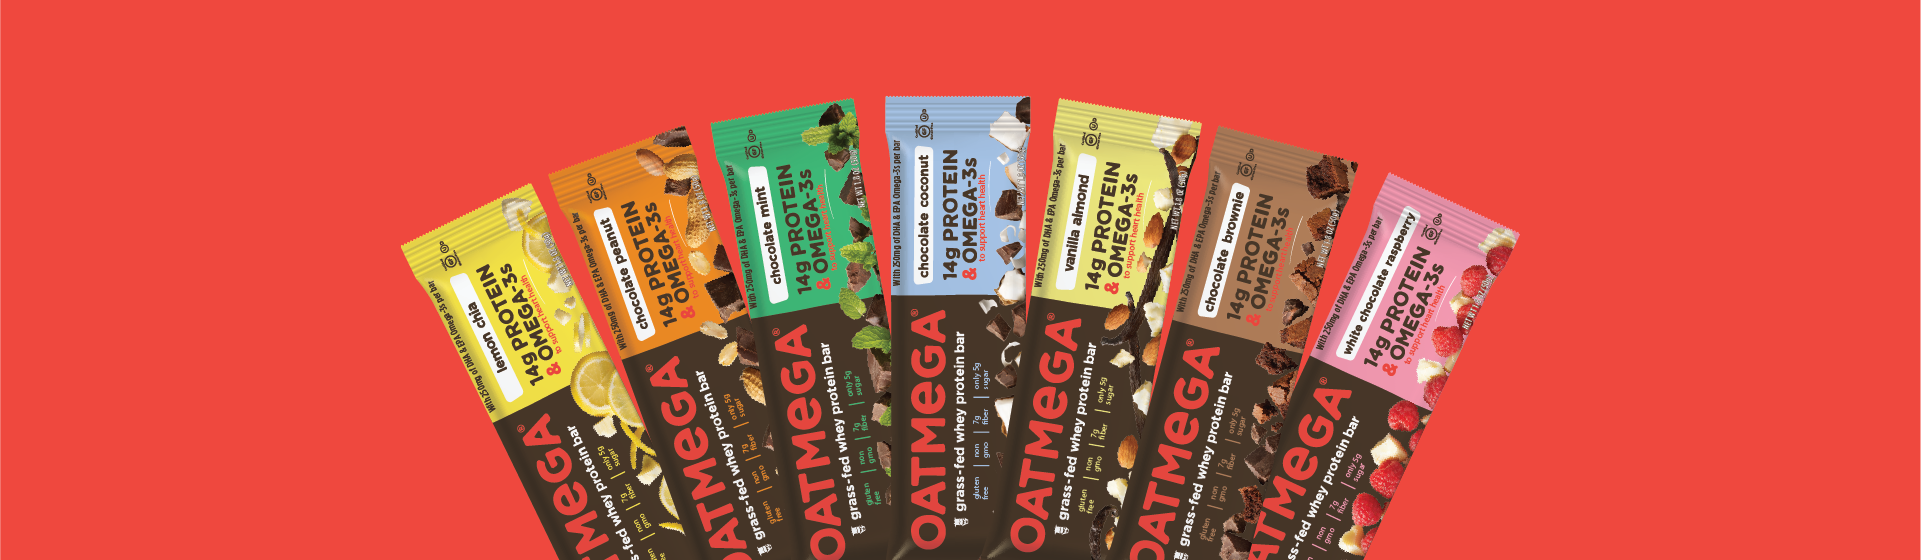 Amplify Snack Brands – Snacking Without Compromise®